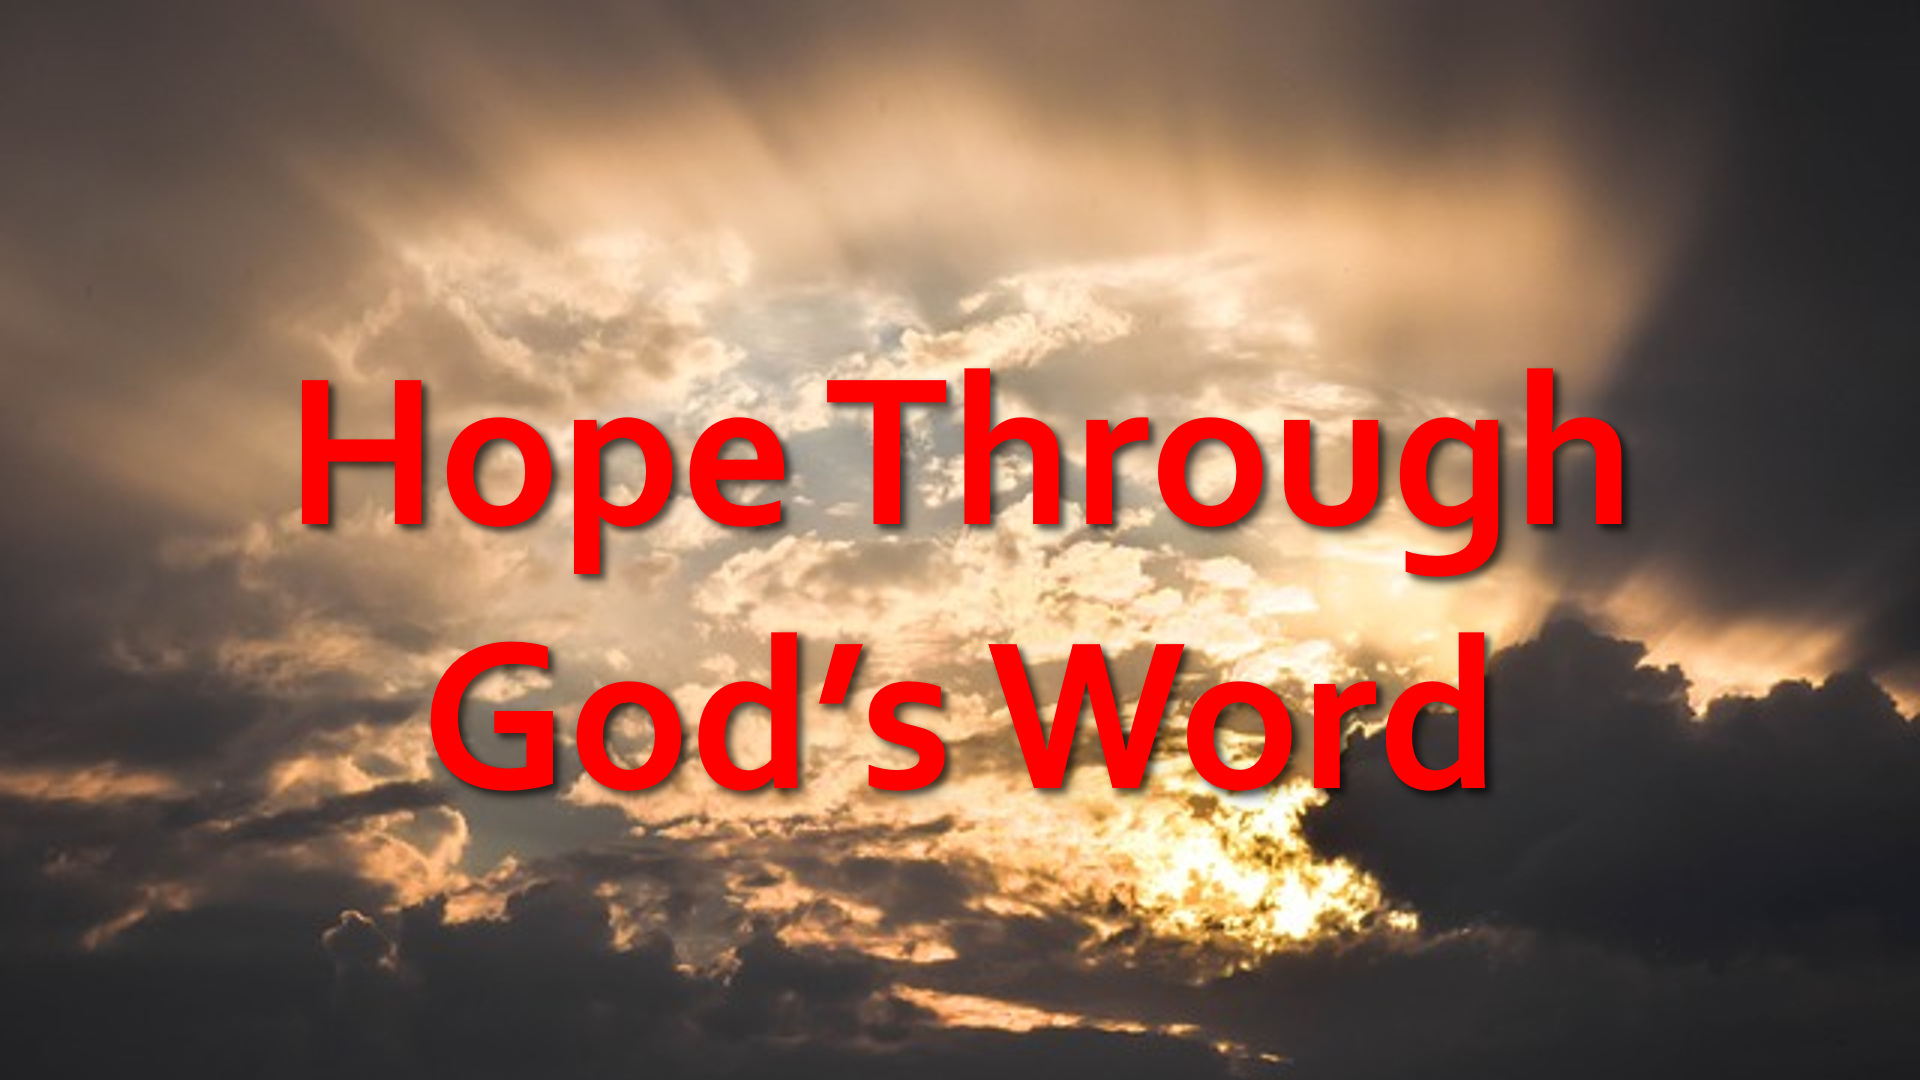 Hope Through God's Word - Sunset Church of Christ in Springfield MO